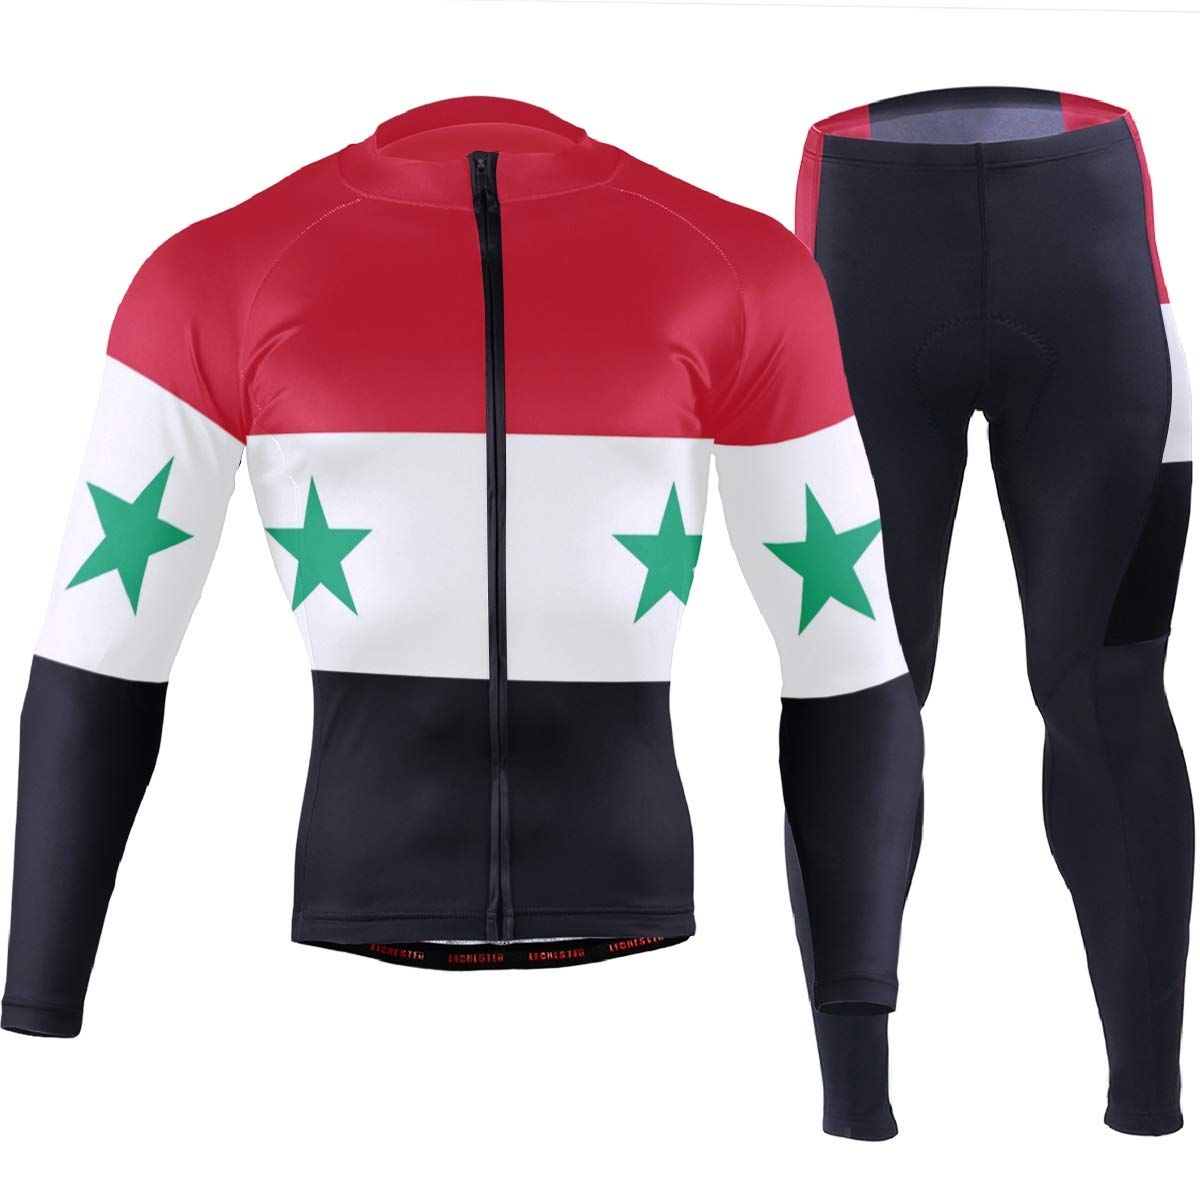 CHINEIN Men's Cycling Jersey Long Sleeve with 3 Rear Pockets Suit Syria Flag